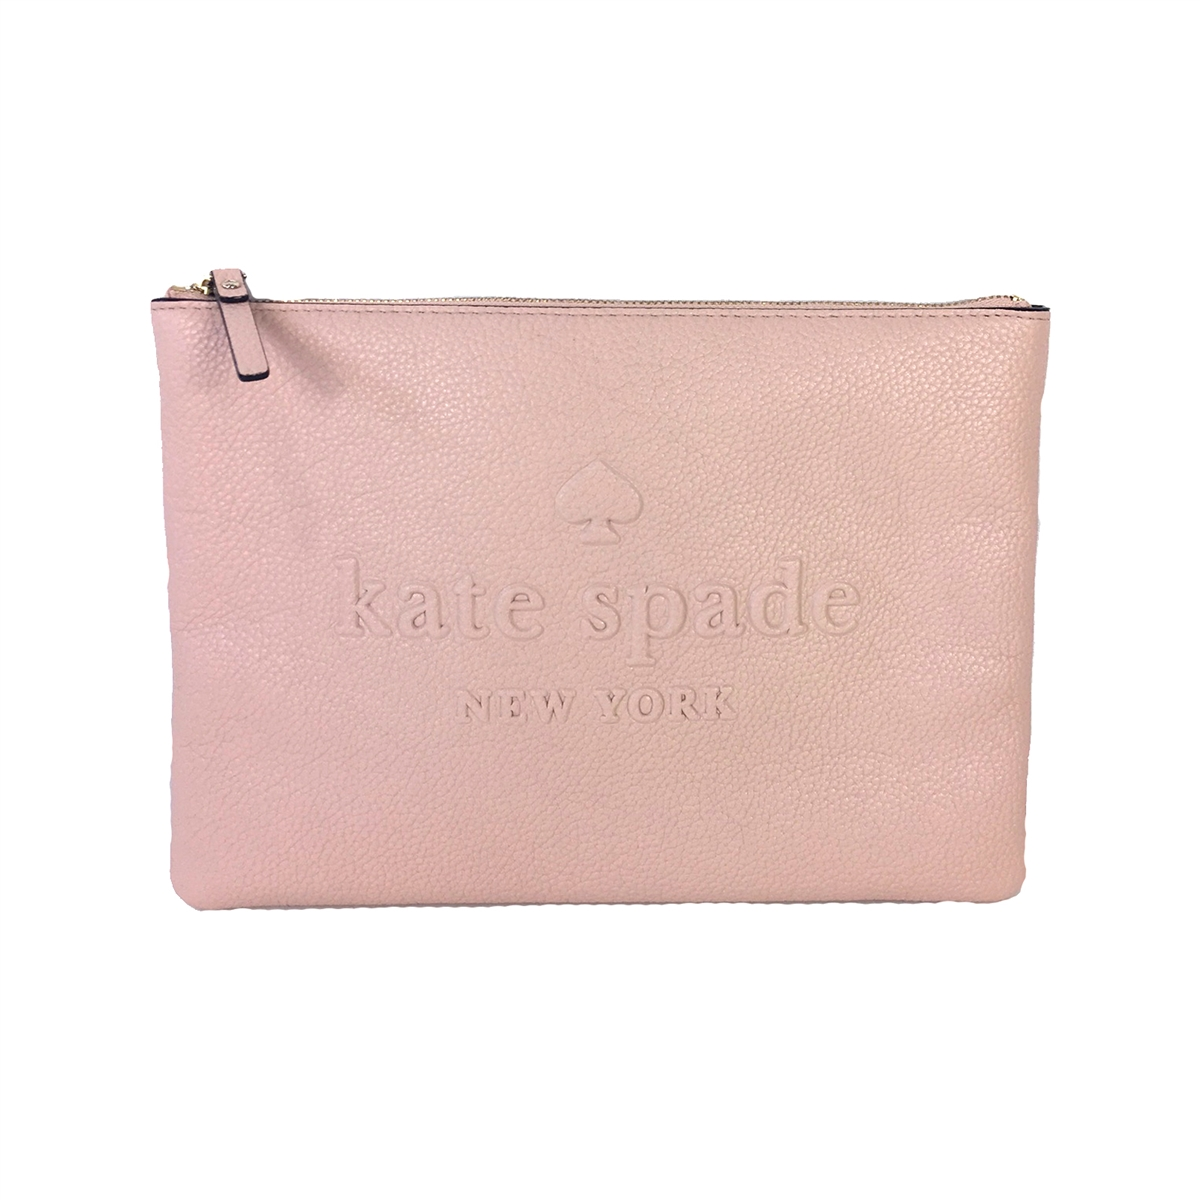 693cff0f39 Kate Spade Ash Street Leather Gia Zip Pouch Clutch